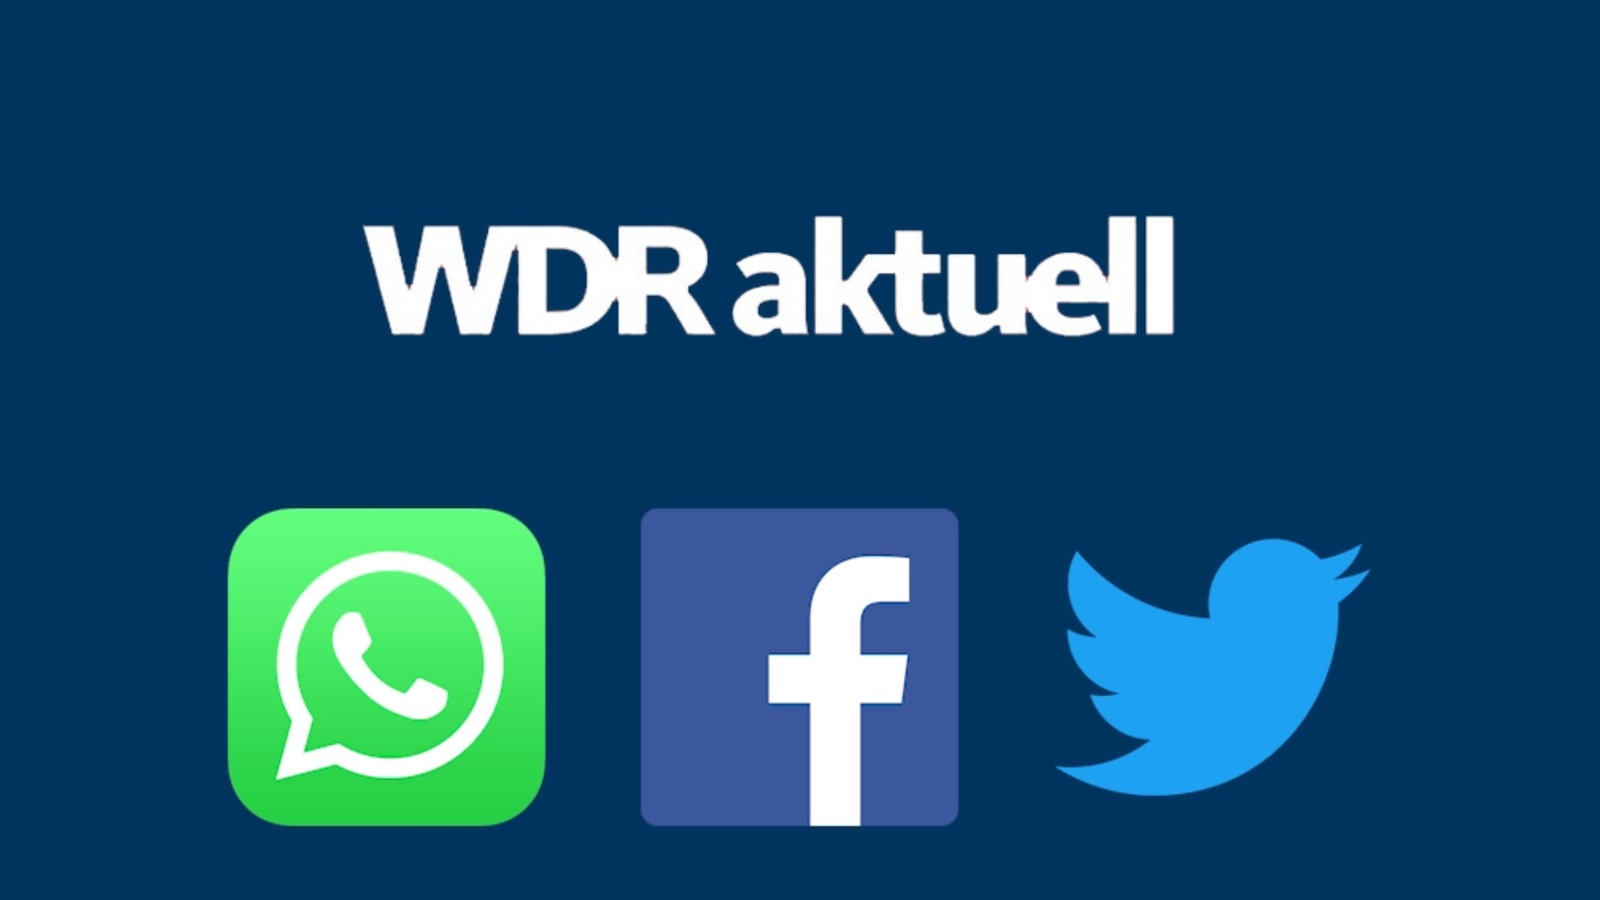 video wdr aktuell auf whatsapp facebook und twitter mediathek wdr. Black Bedroom Furniture Sets. Home Design Ideas